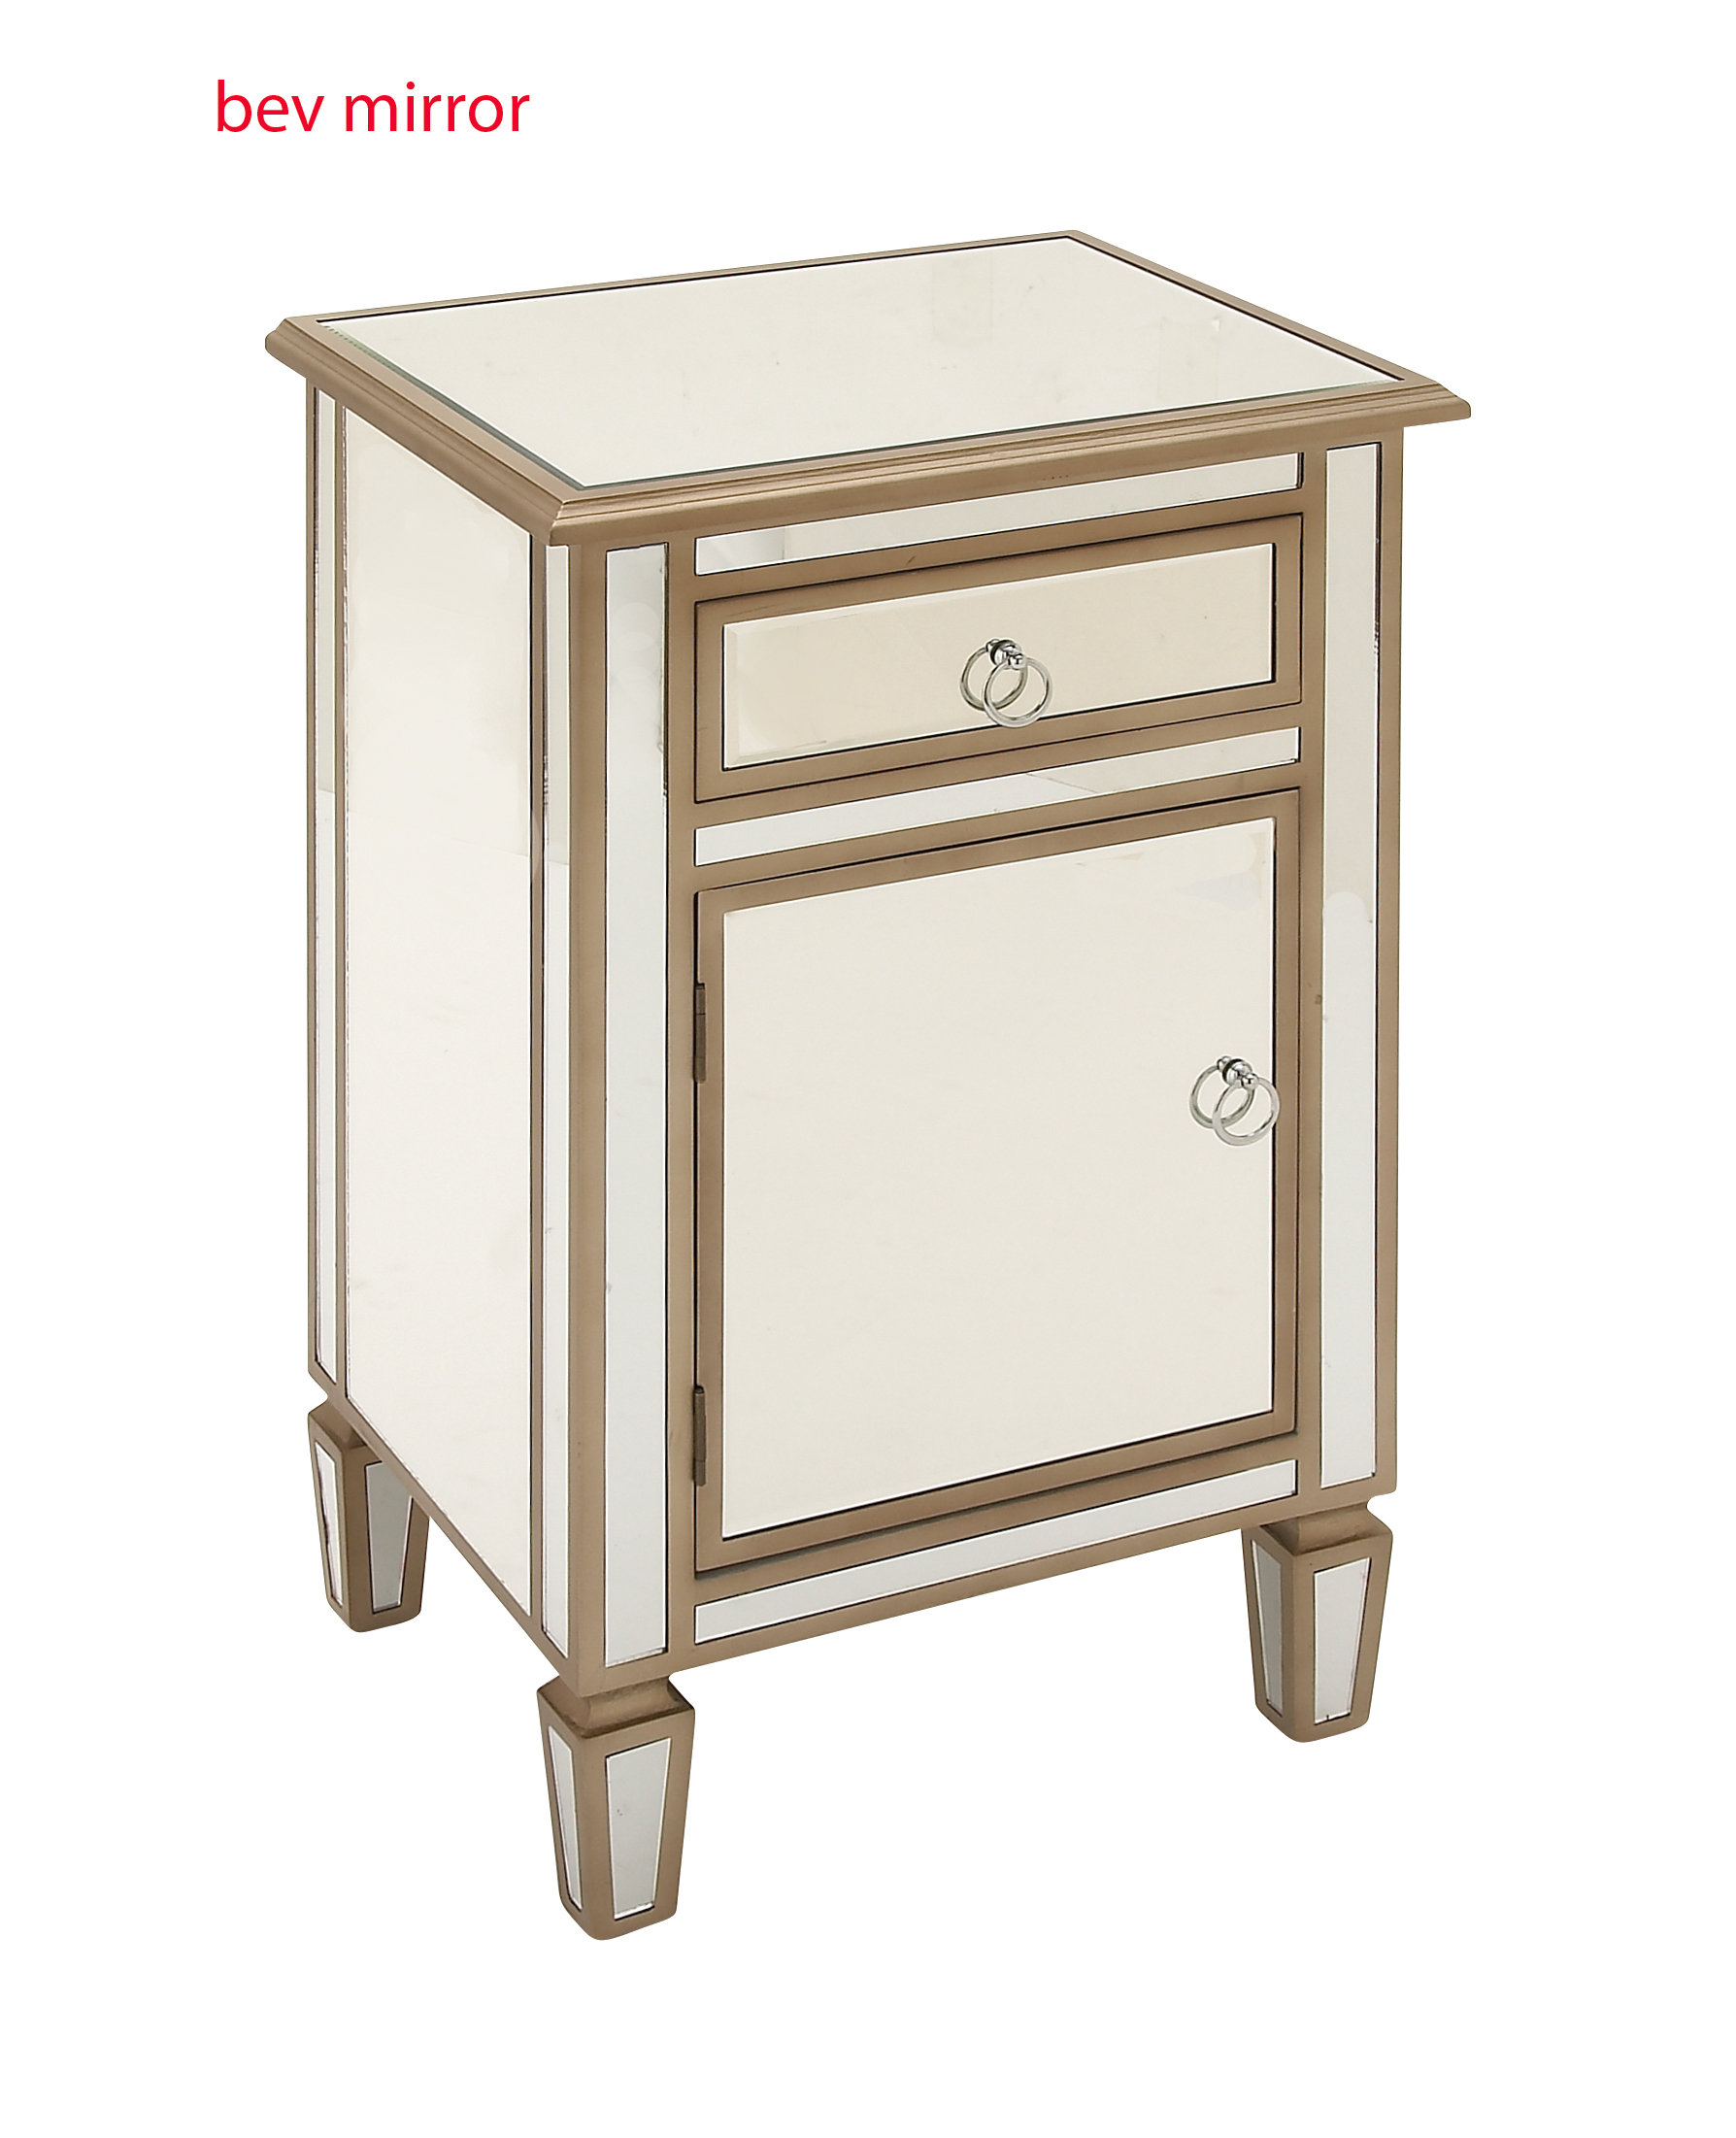 house hampton brinley drawer accent chest birch lane woodmirror side cabinet don mirrored table clear wood mirror crystal desk lamp end with built ikea white bedside counter